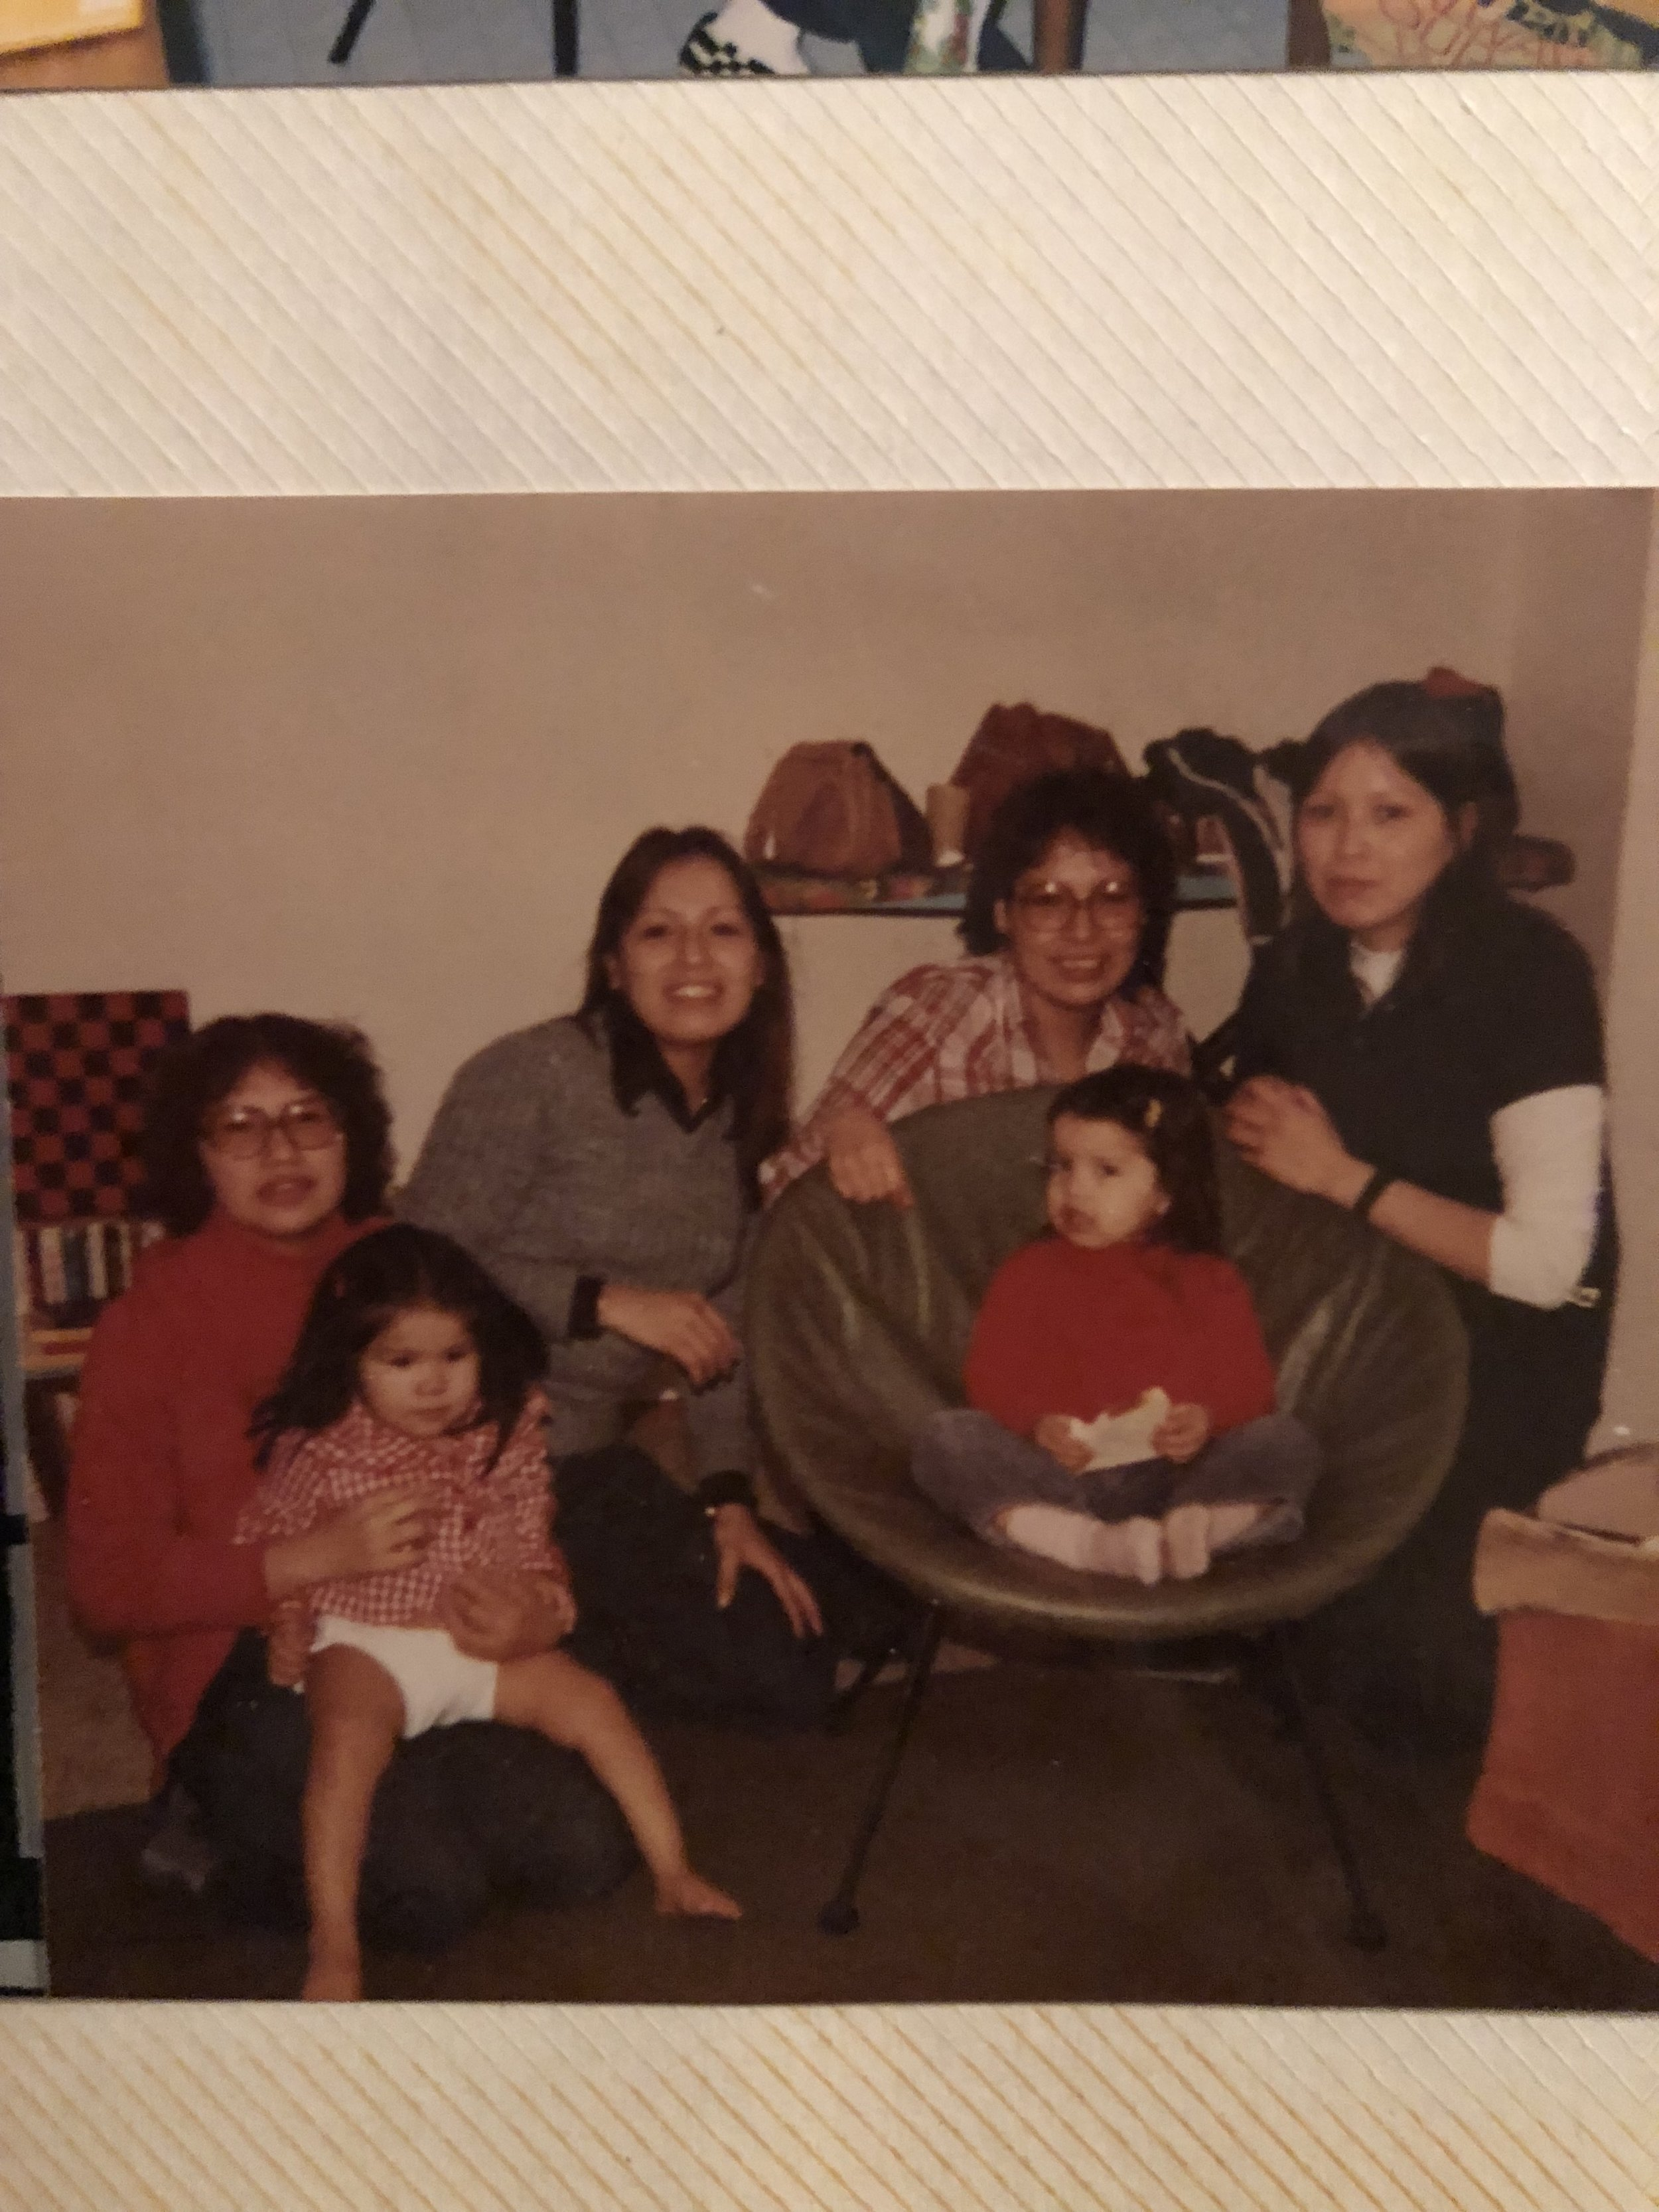 My mother on the far right with my two aunts to her right, their cousin, my second cousin and me in the green chair.